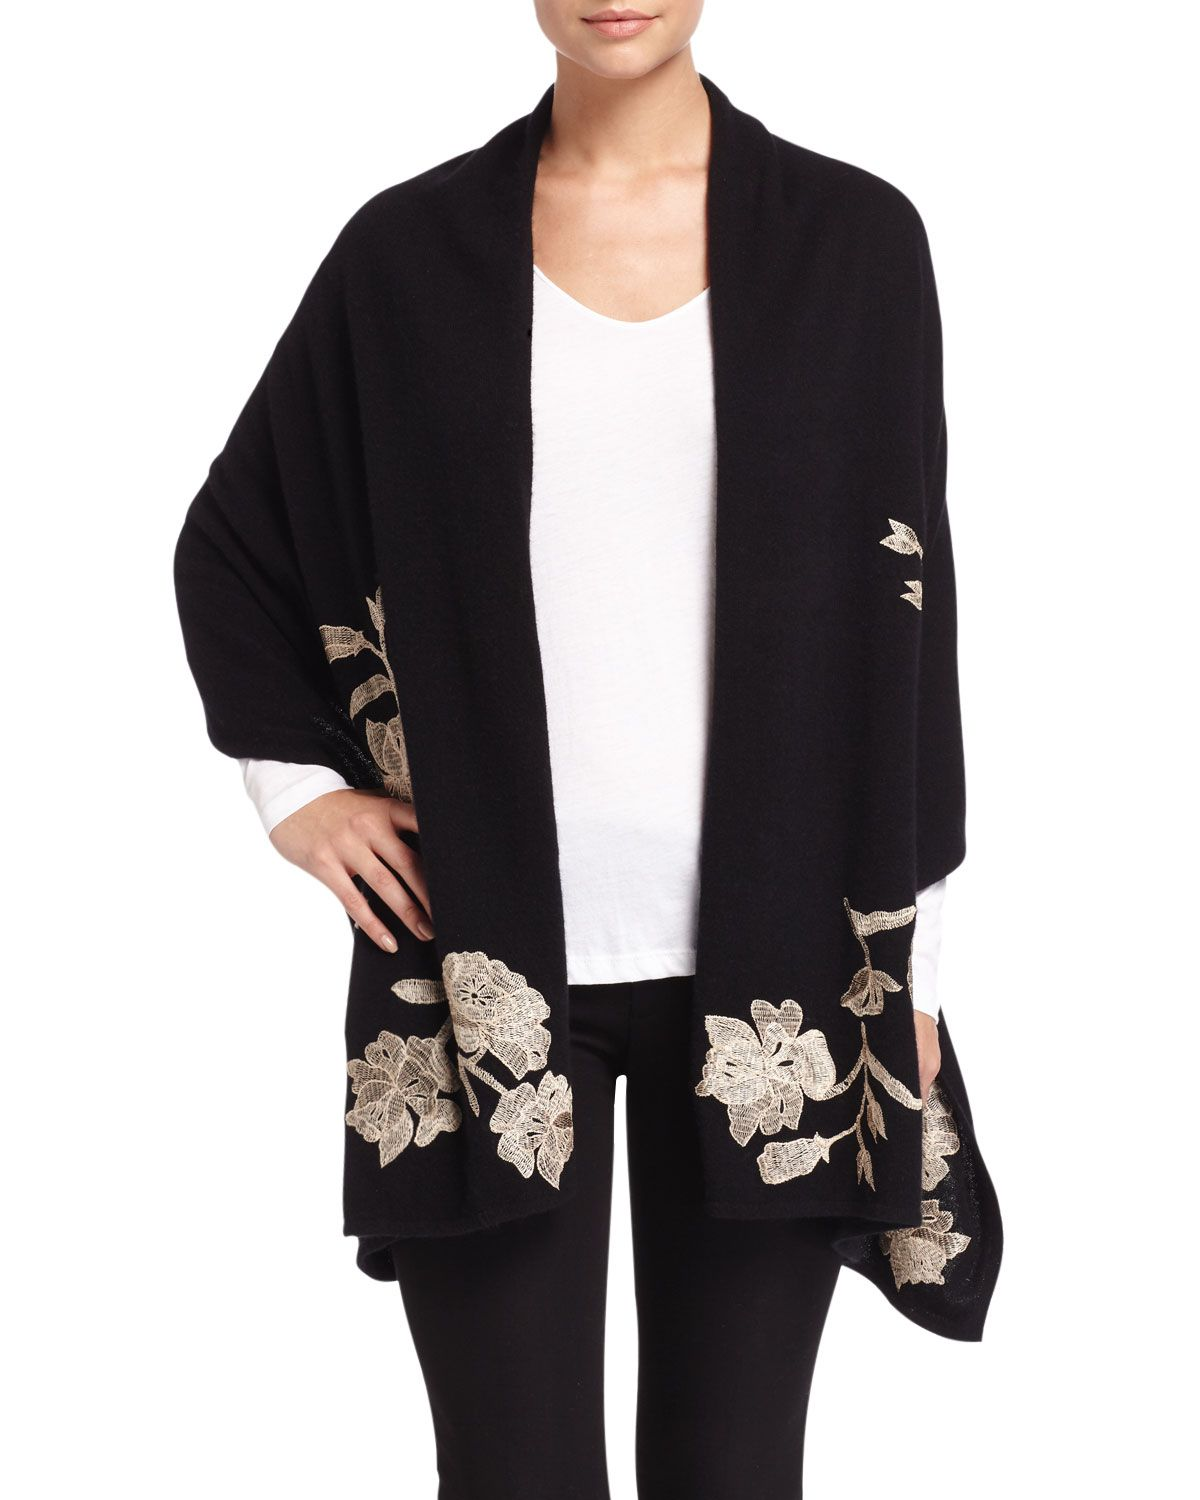 Cashmere Floral-Embroidered Shawl, Gray - Josie Natori for Neiman Marcus Cashmere